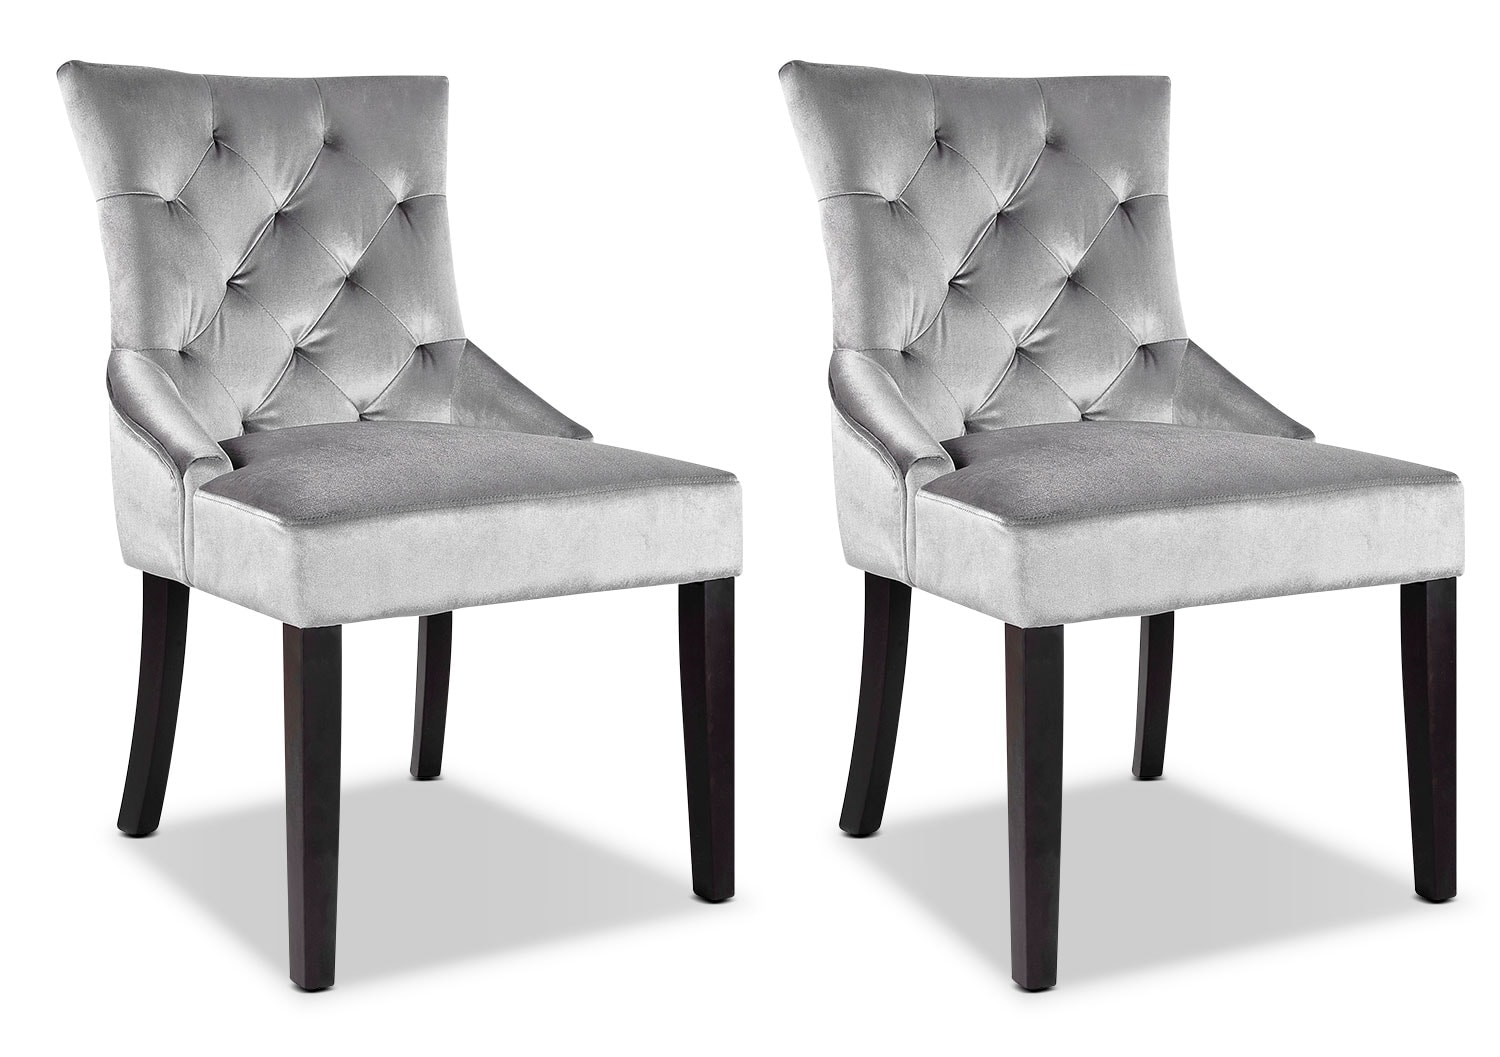 LAD Velvet Fabric Button-Tufted Accent Chairs, Set of 2 – Grey